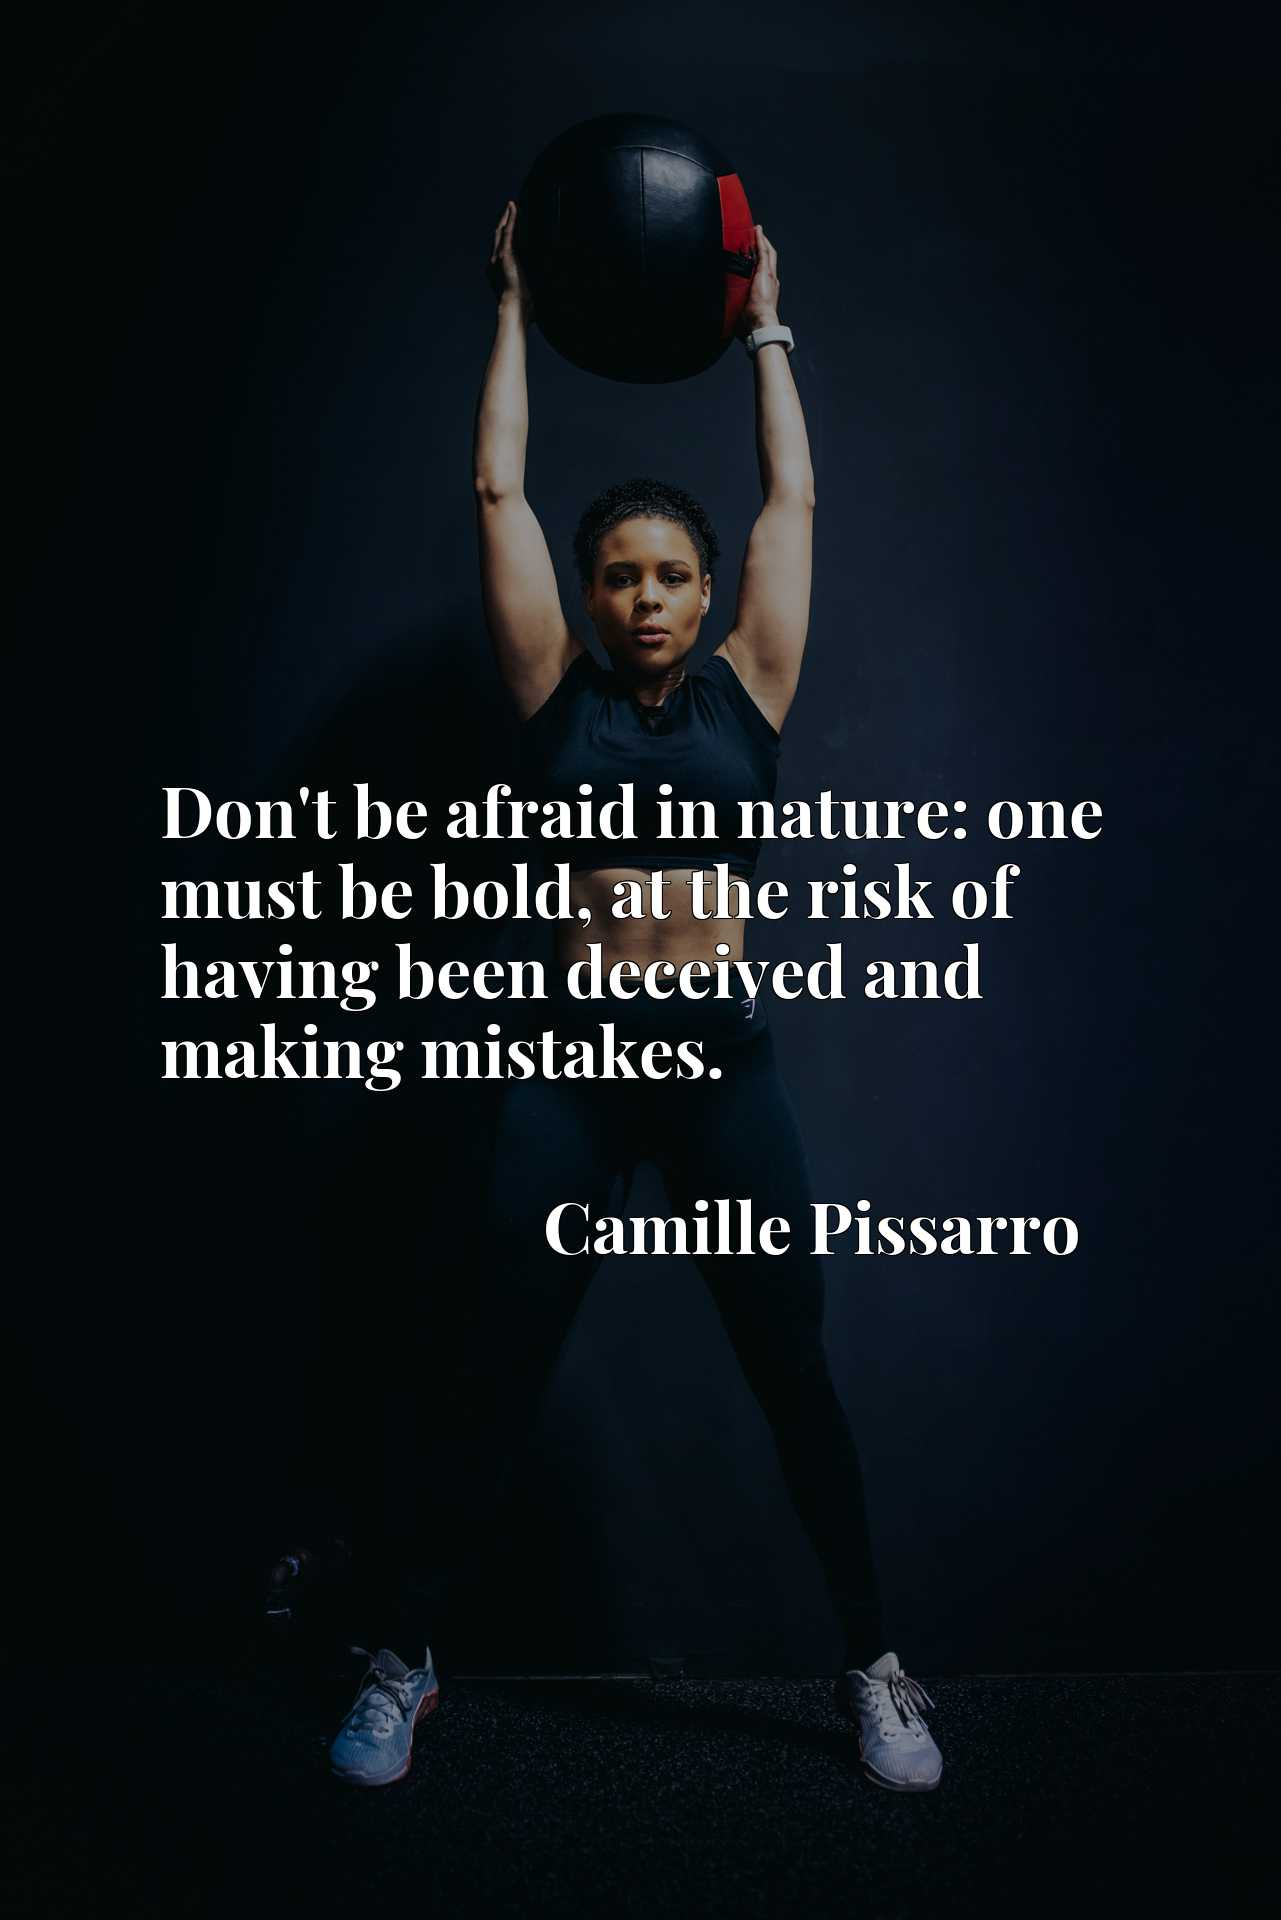 Quote Picture :Don't be afraid in nature: one must be bold, at the risk of having been deceived and making mistakes.